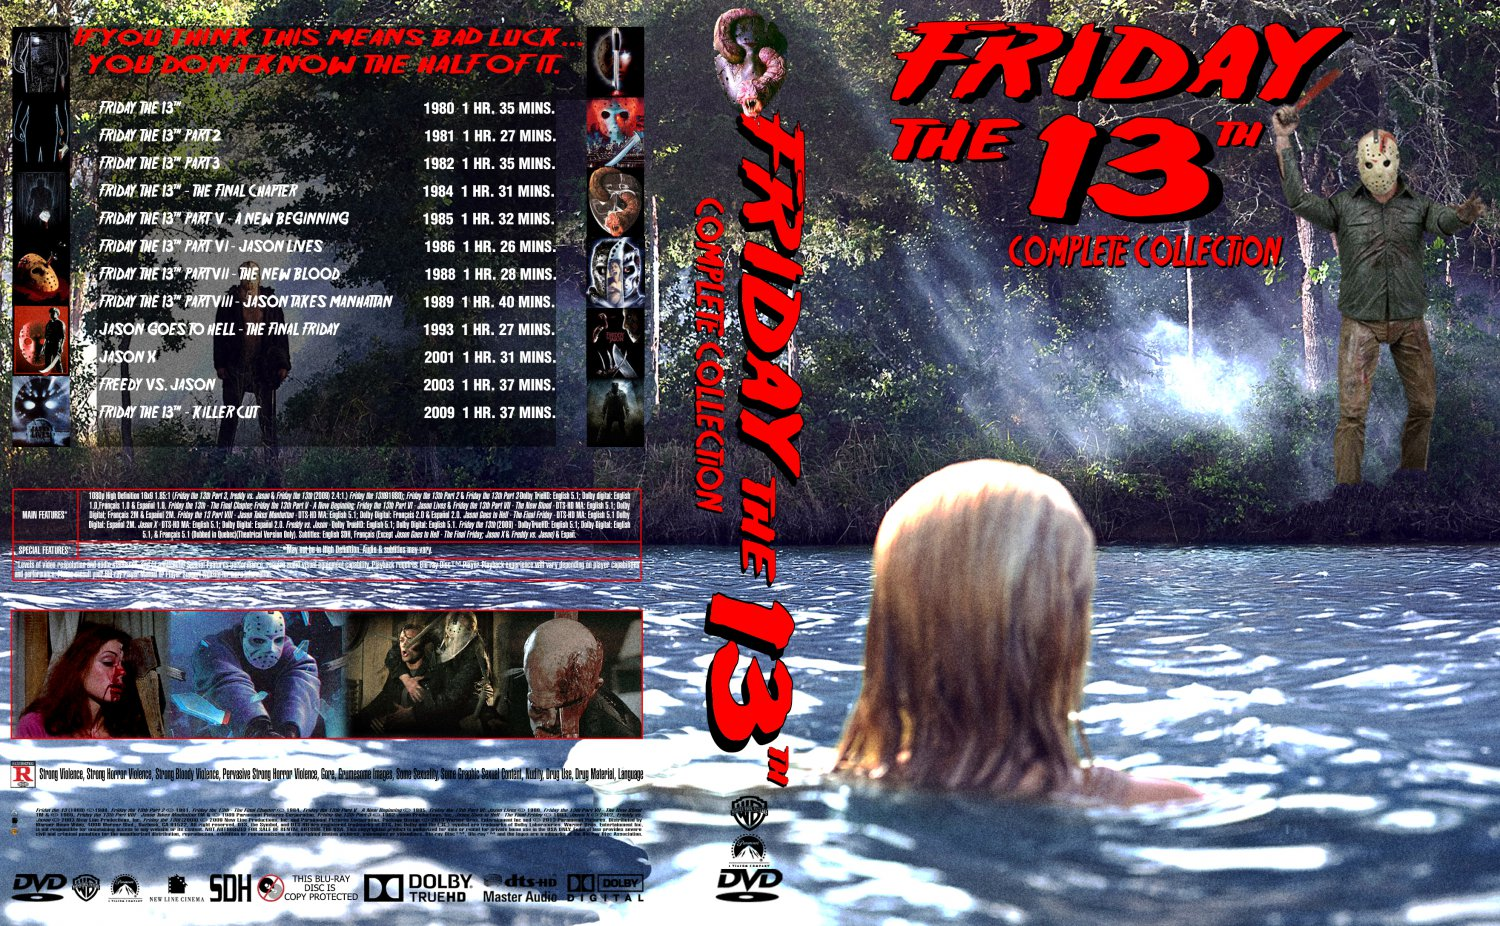 13th custom, made friday movie